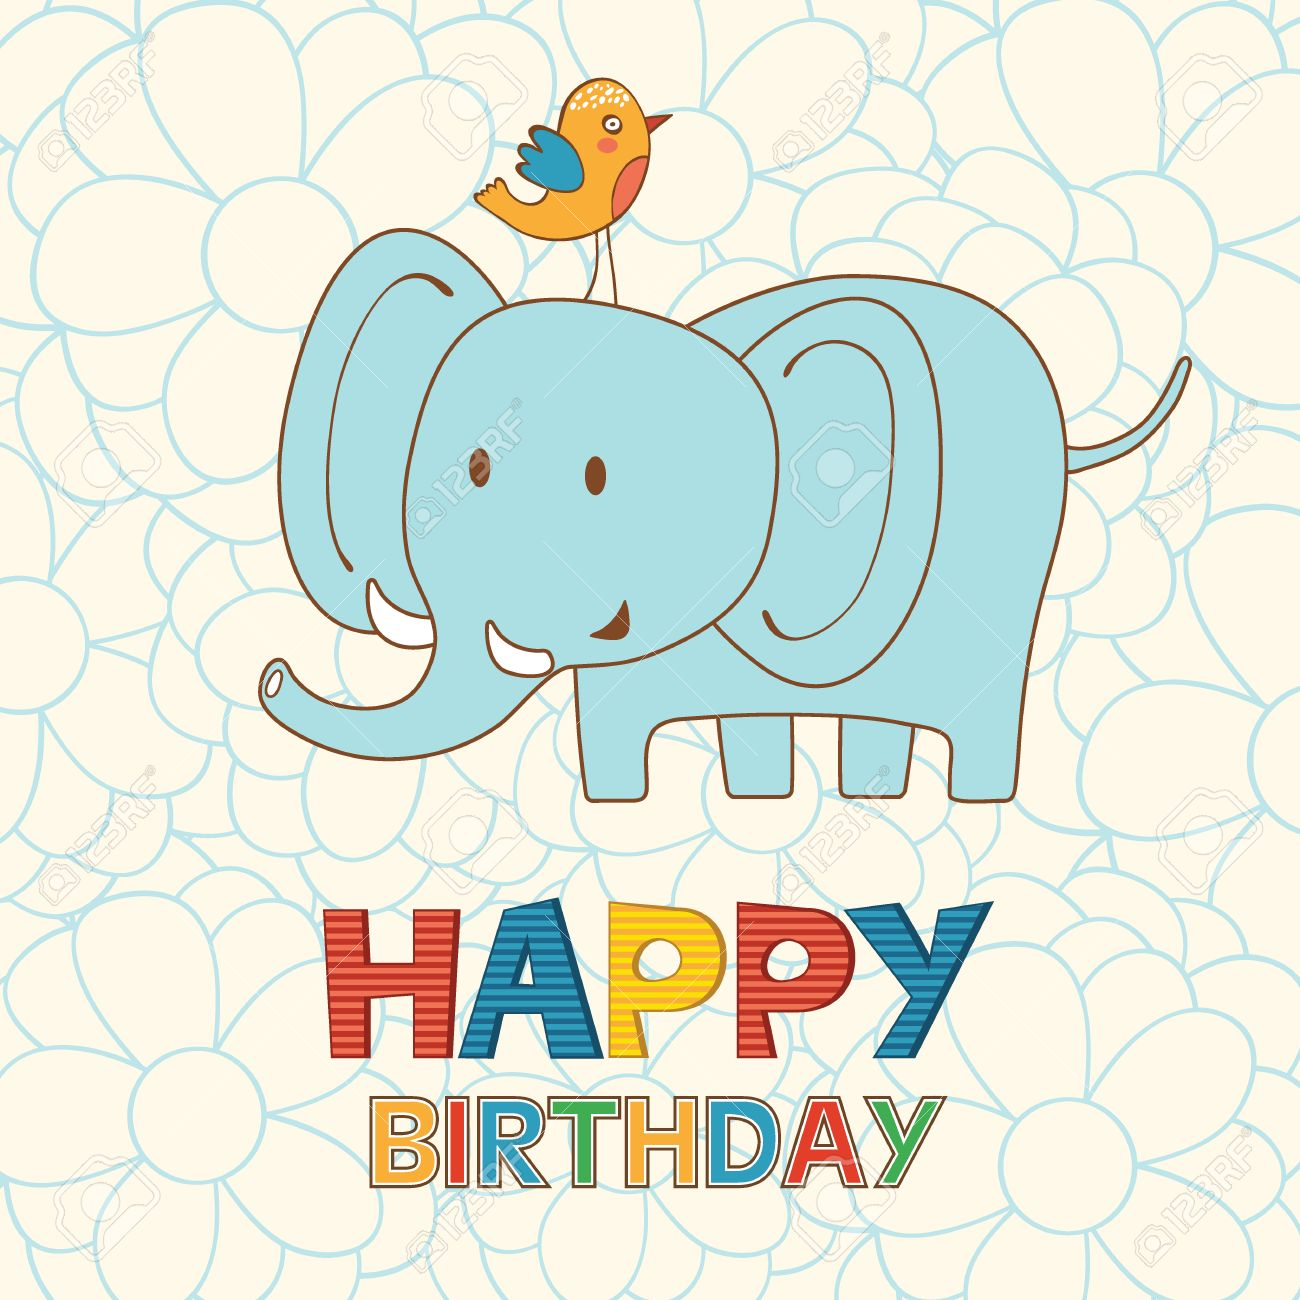 Cute Happy Birthday Card With Funny Elephant And Bird Vector Illustration Stock